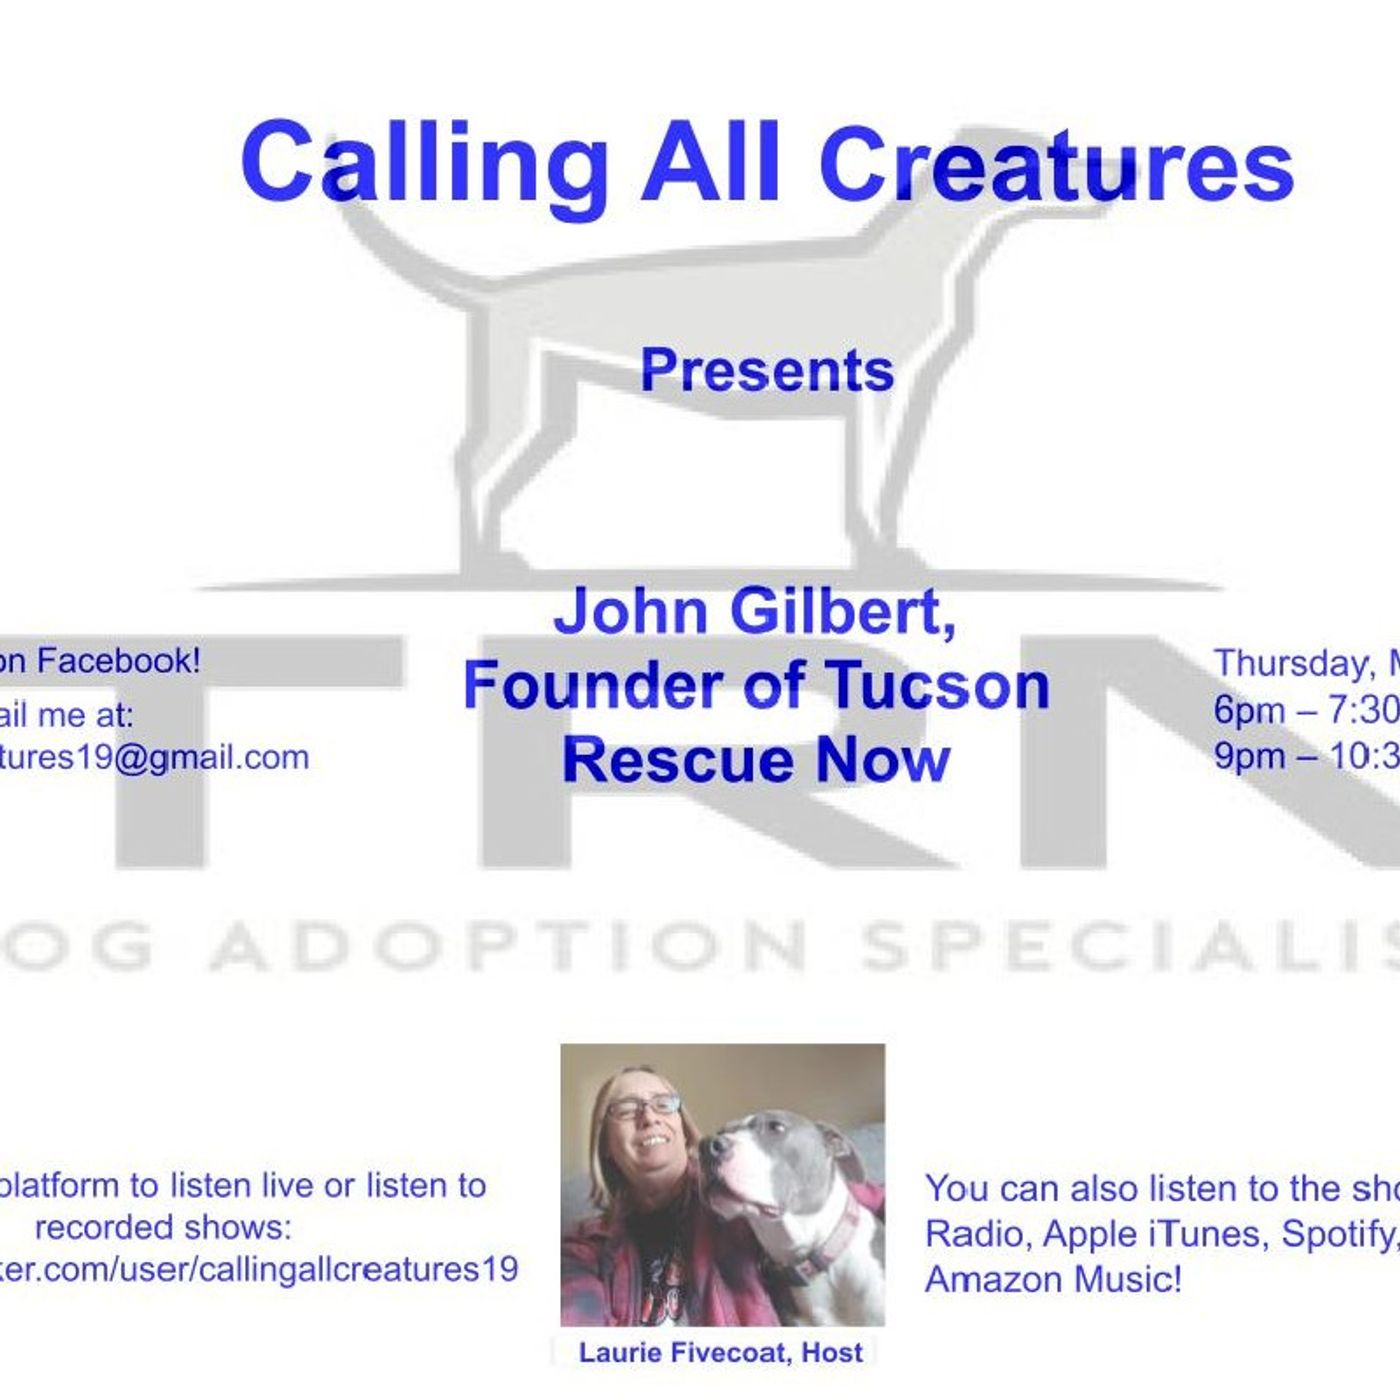 Calling All Creatures Presents Tucson Rescue Now Update